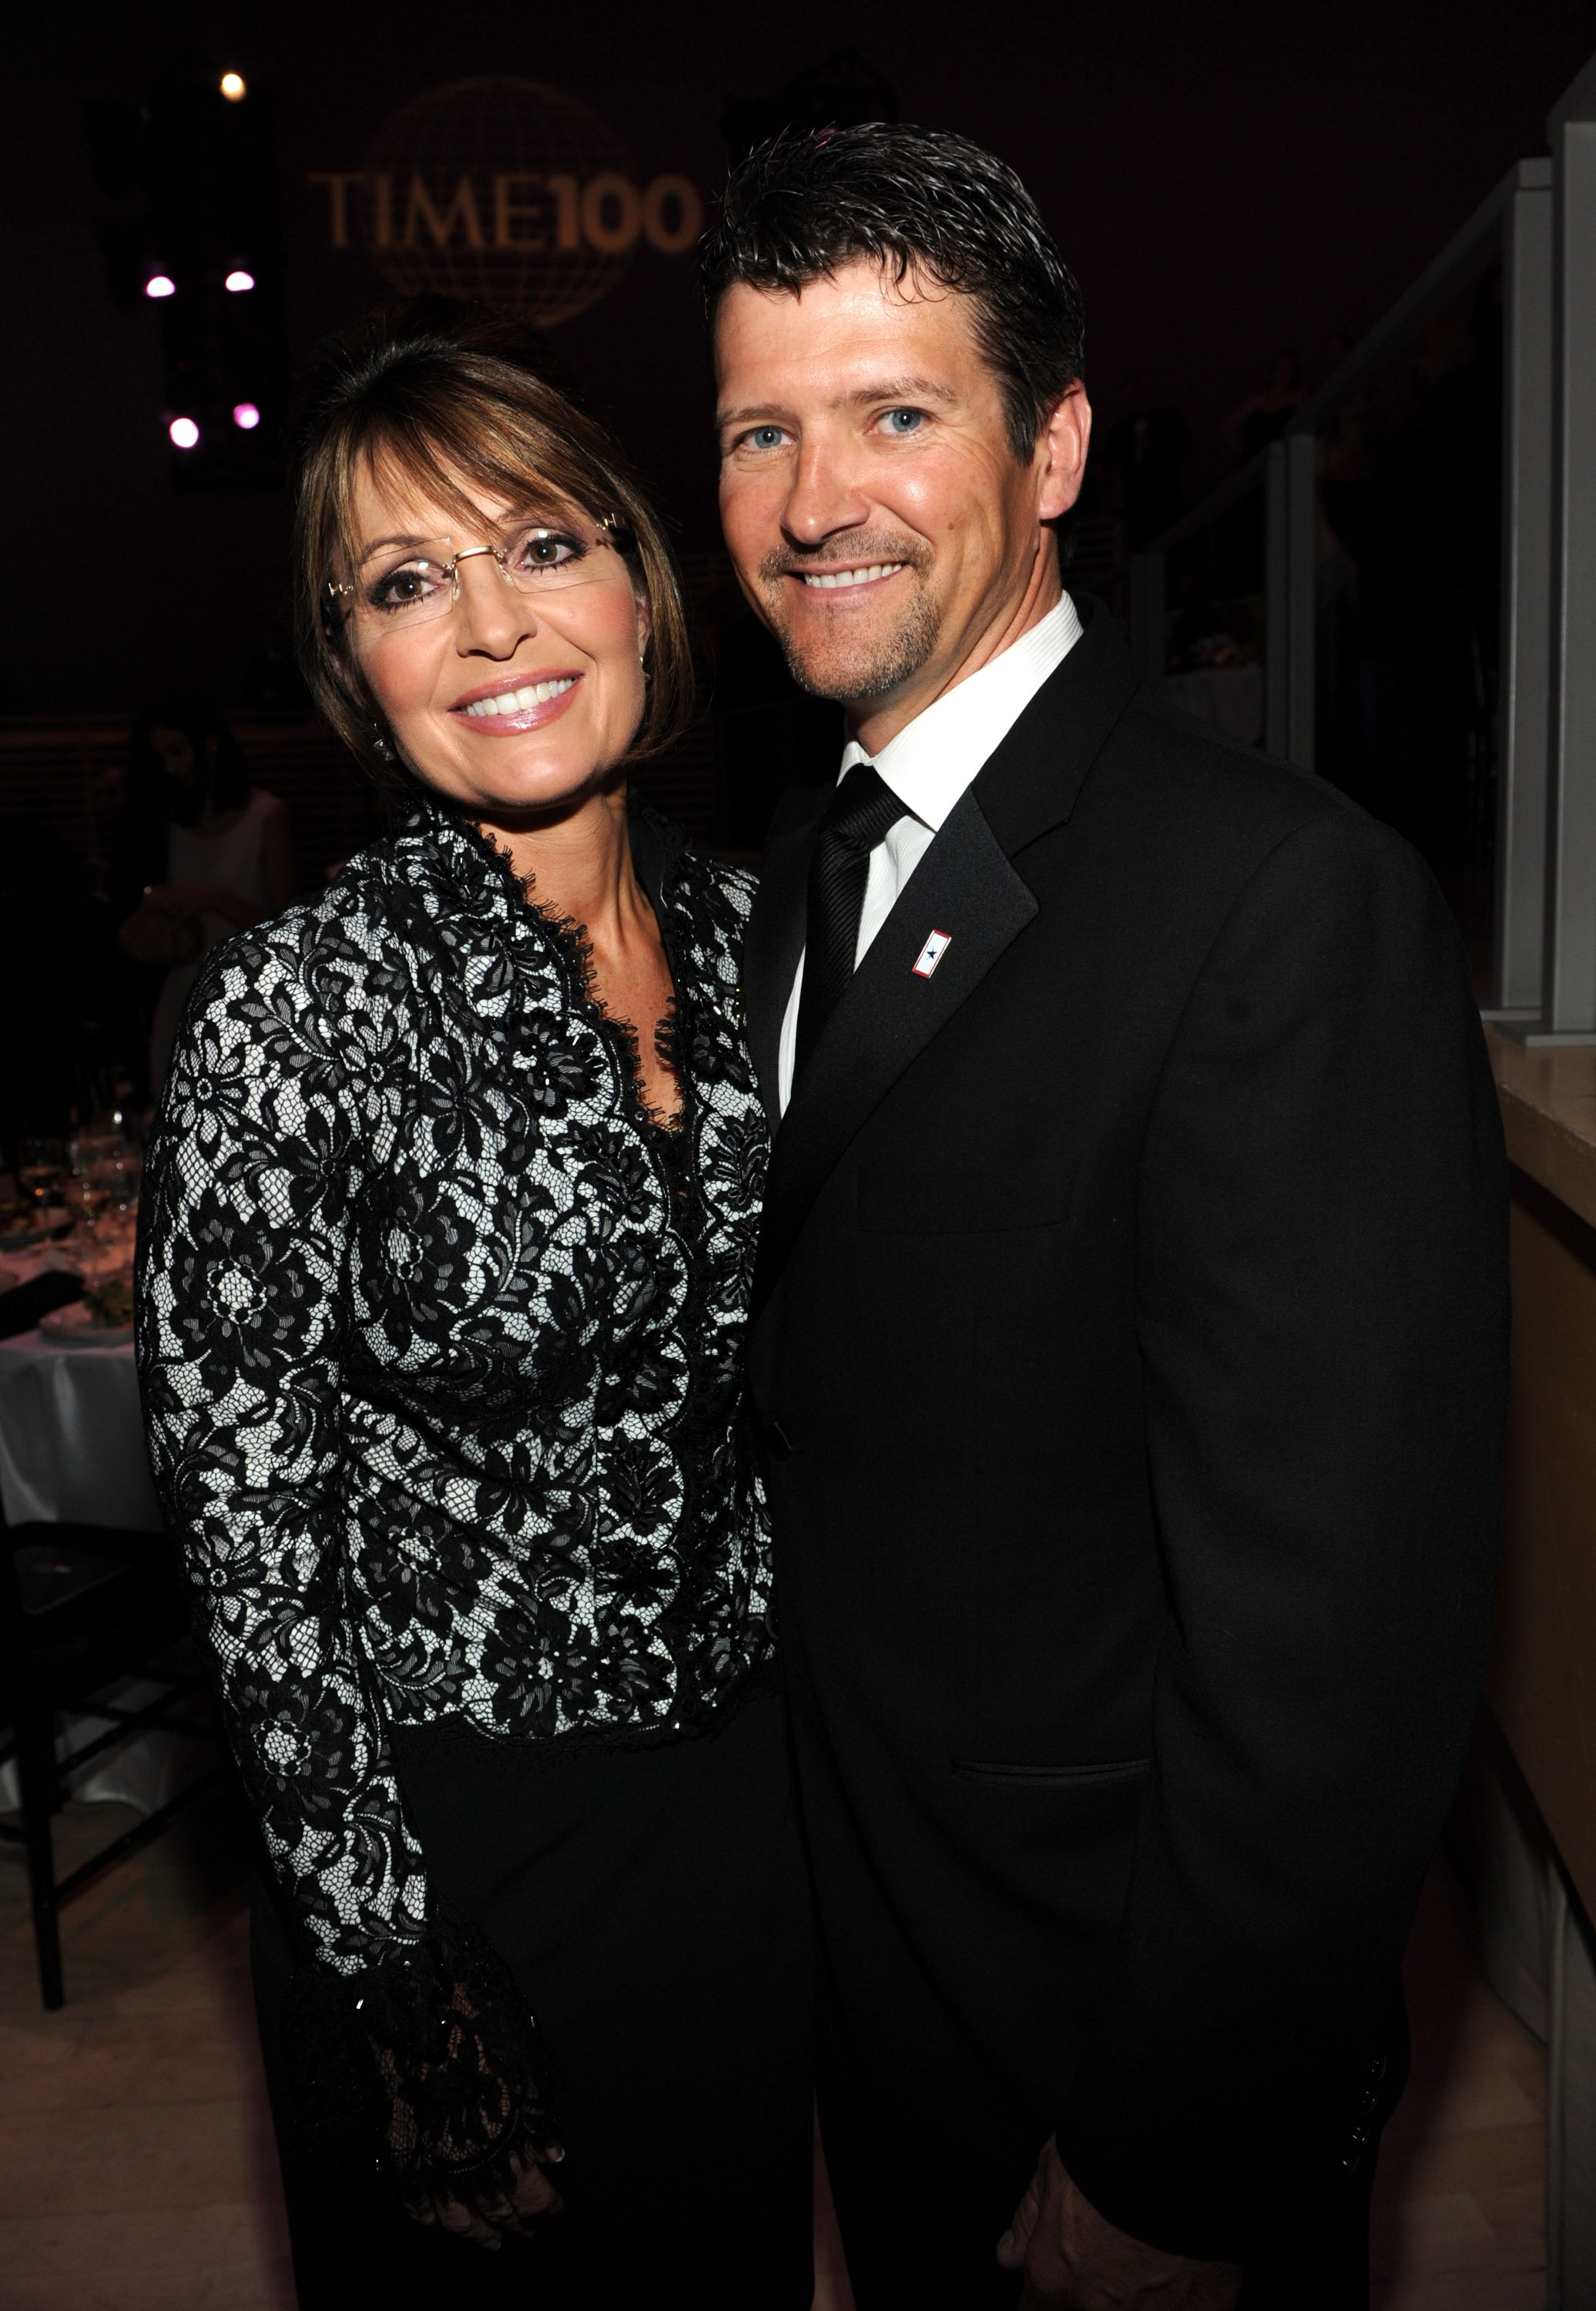 Sarah Palin and Todd Palin at Frederick P. Rose Hall, Jazz at Lincoln Center on May 4, 2010, in New York City. | Photo: Getty Images.